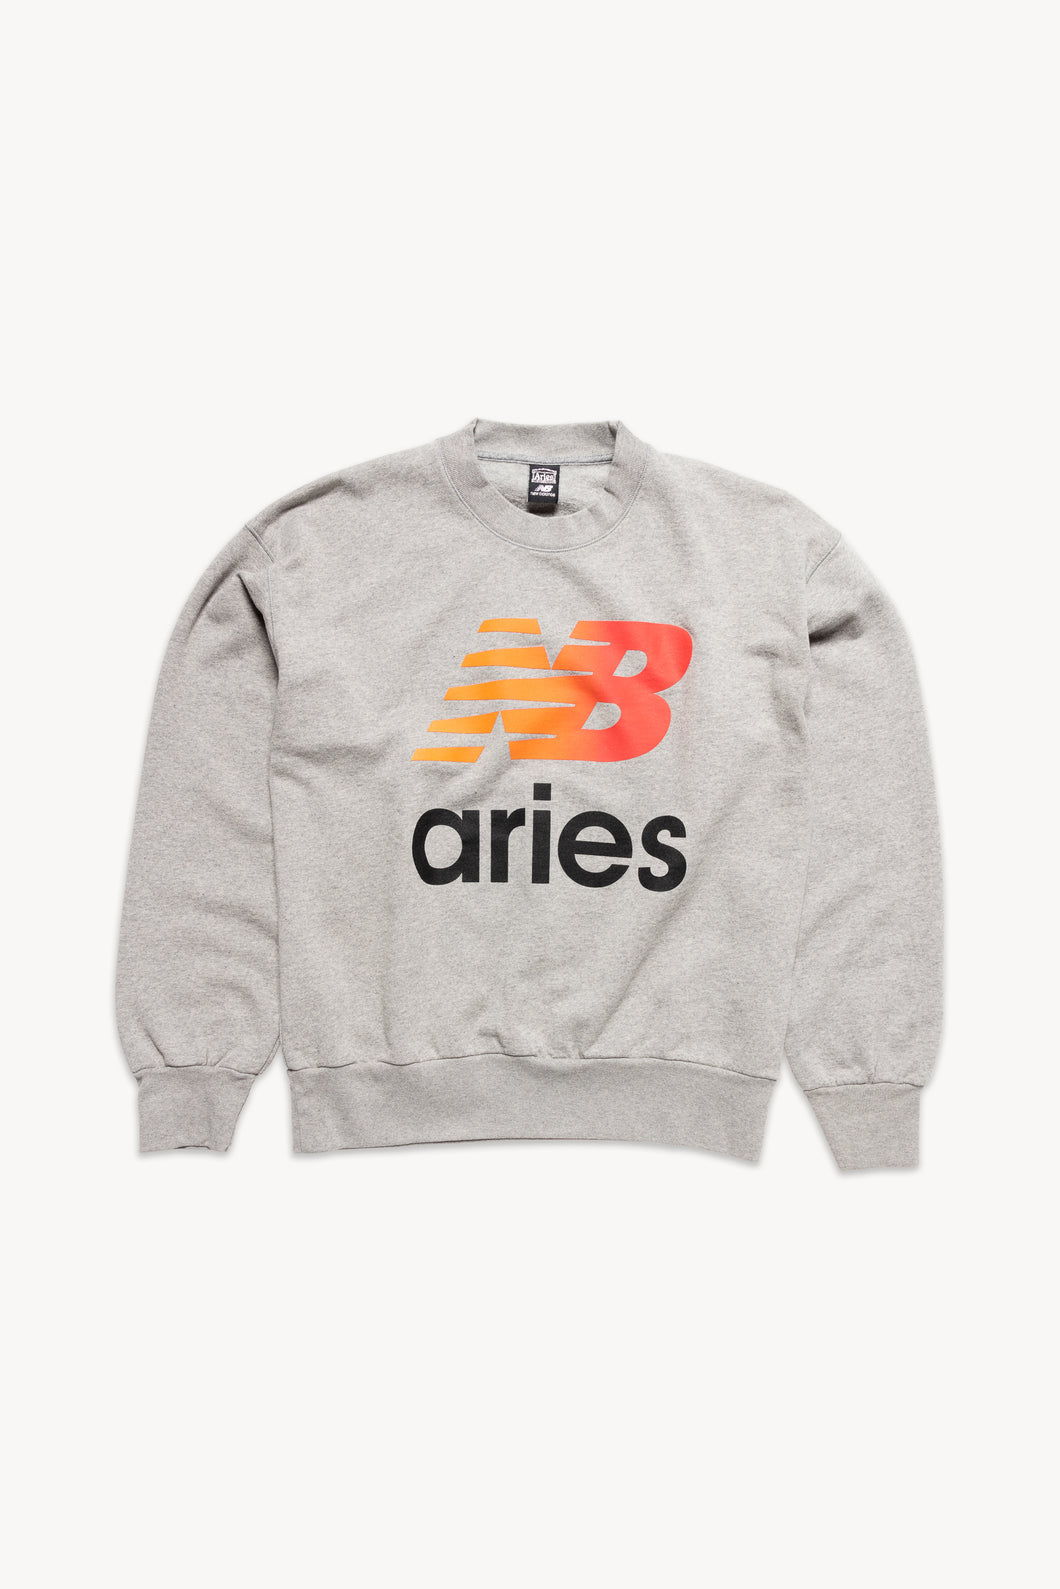 Aries x New Balance Sweat